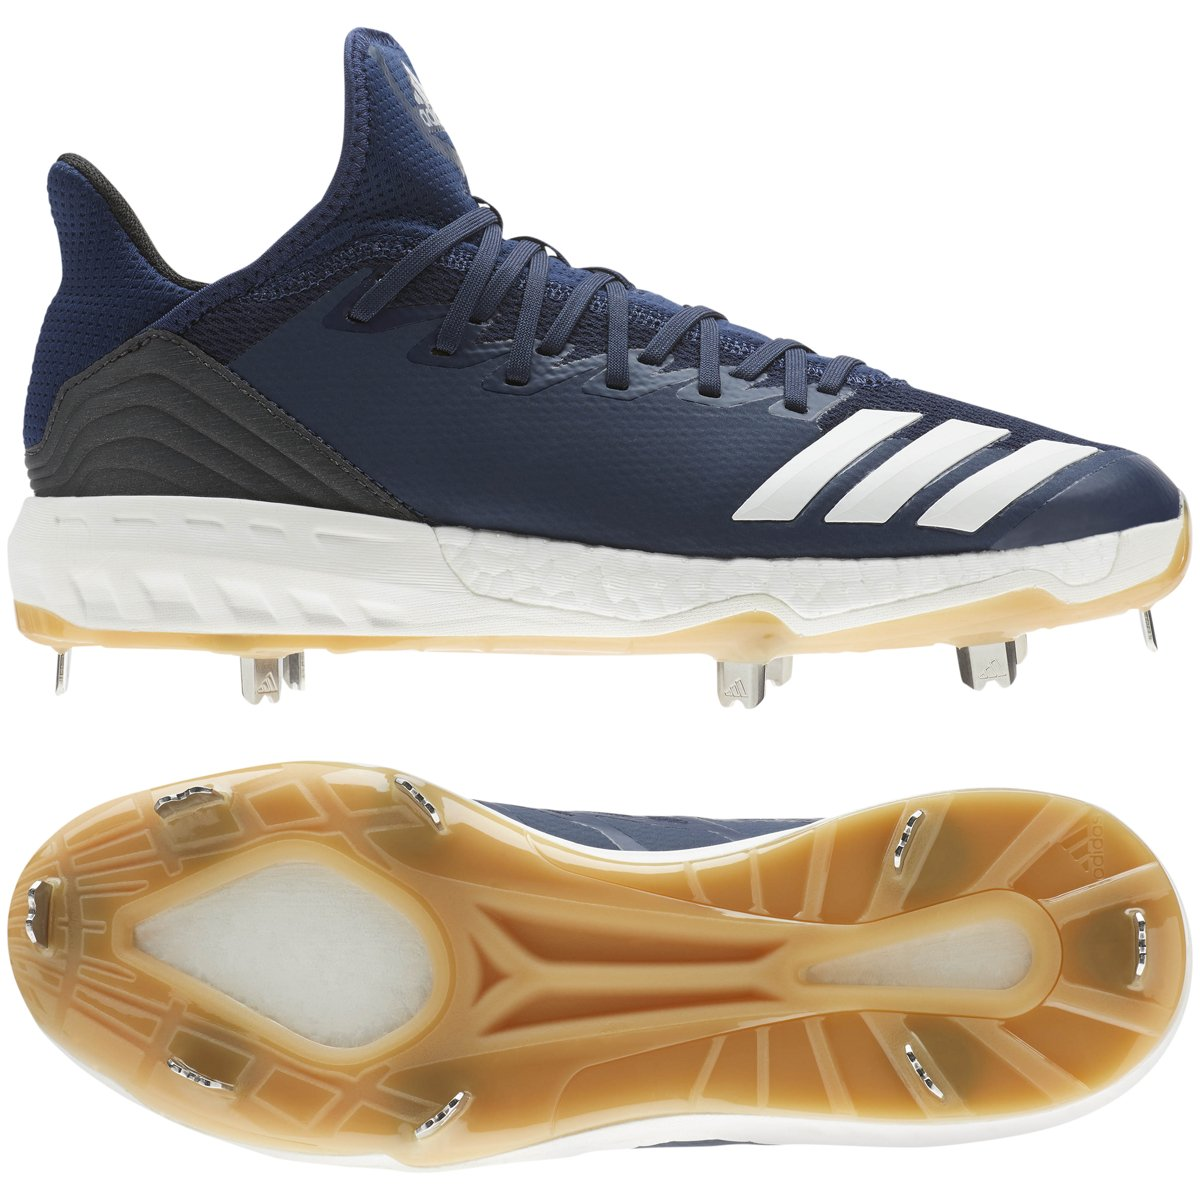 adidas Icon 4 Cleat - Men's Baseball 6.5 Collegiate Navy/White/Black by adidas (Image #1)